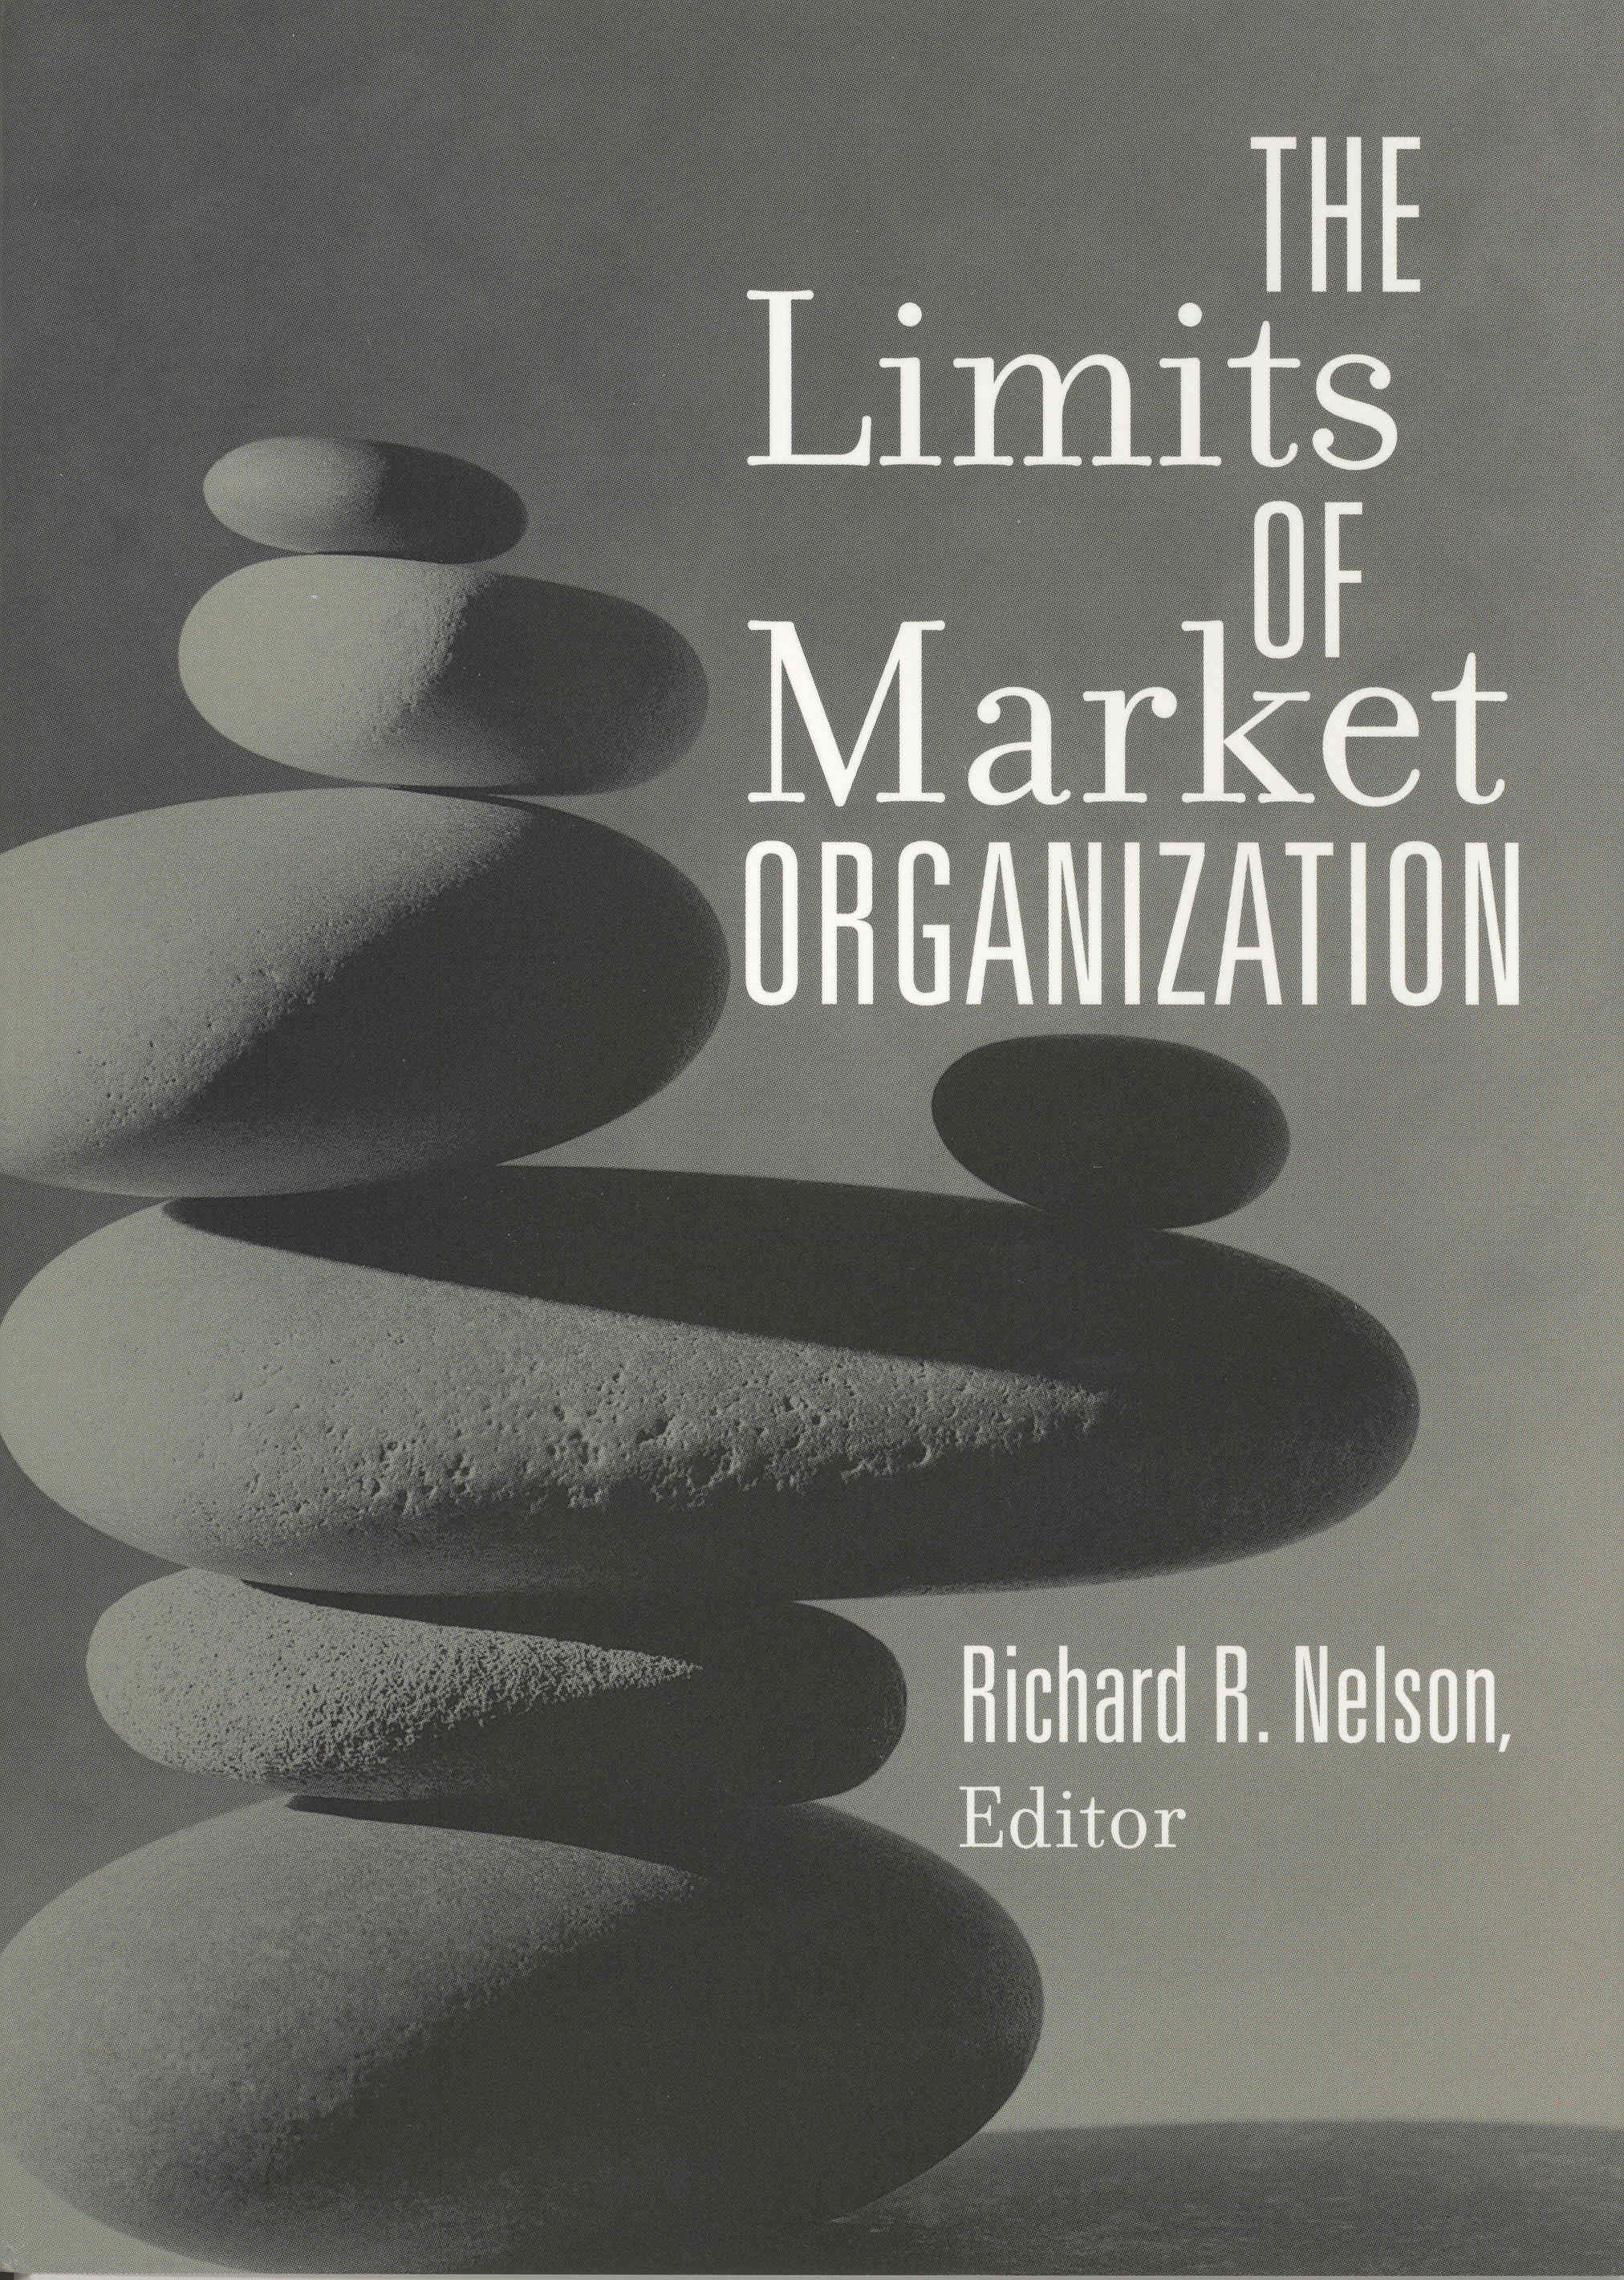 The Limits of Market Organization